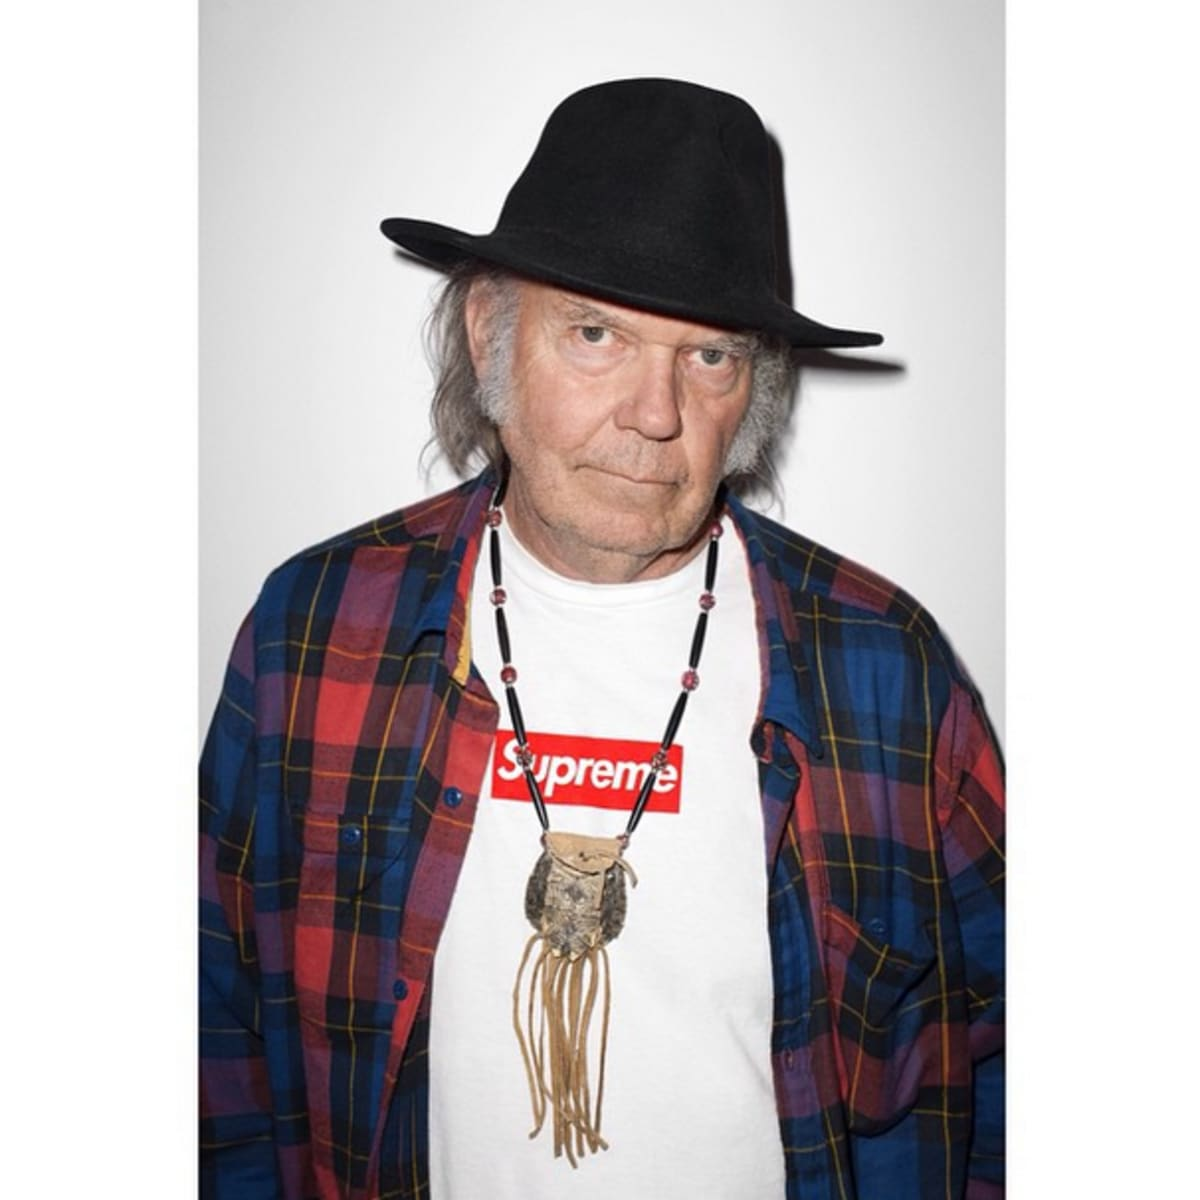 supreme u0026 39 s new ad campaign features neil young